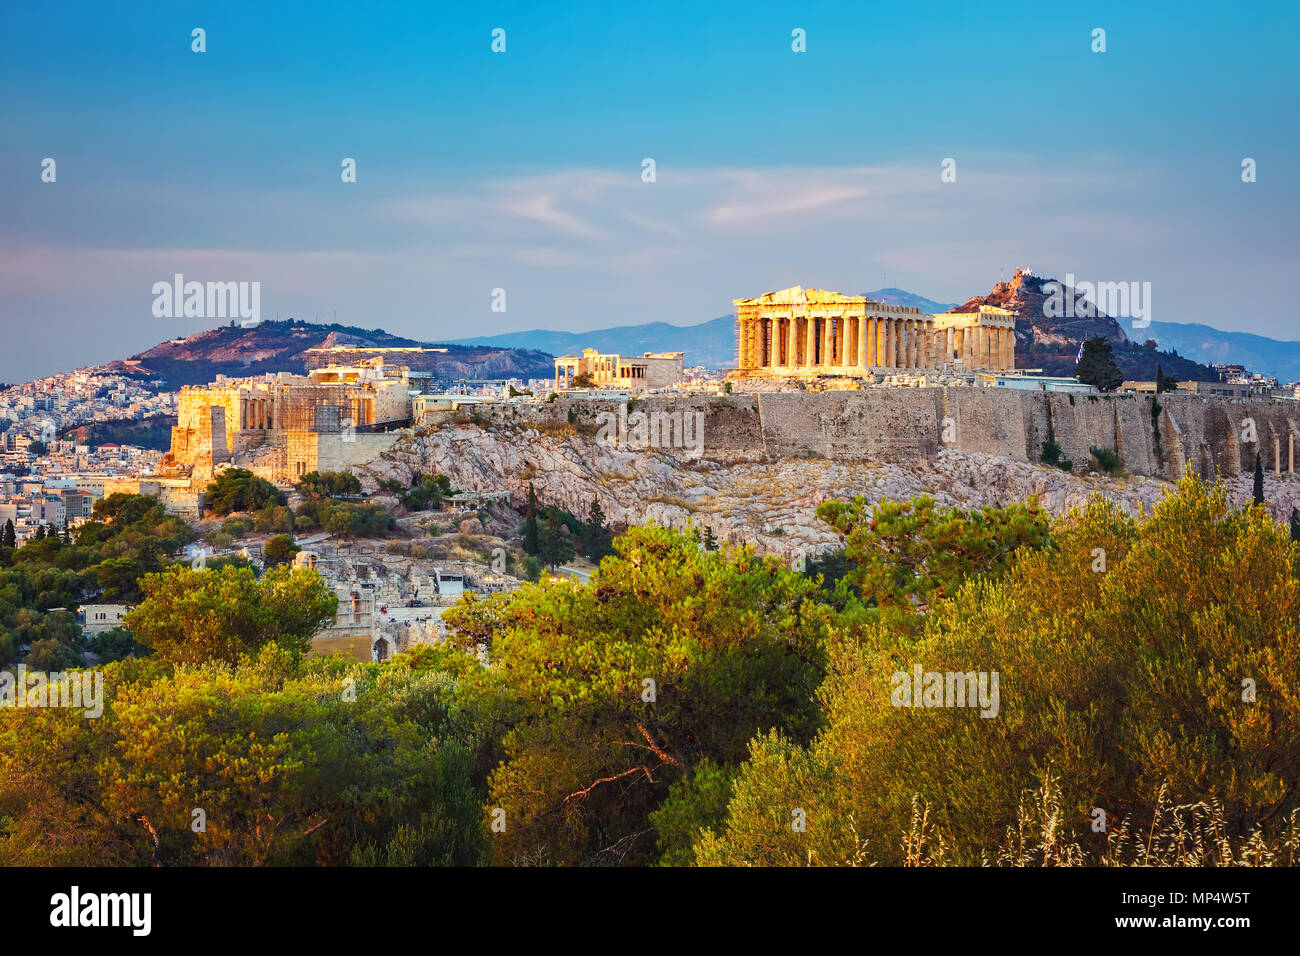 Acropolis in Athens, Greece Stock Photo